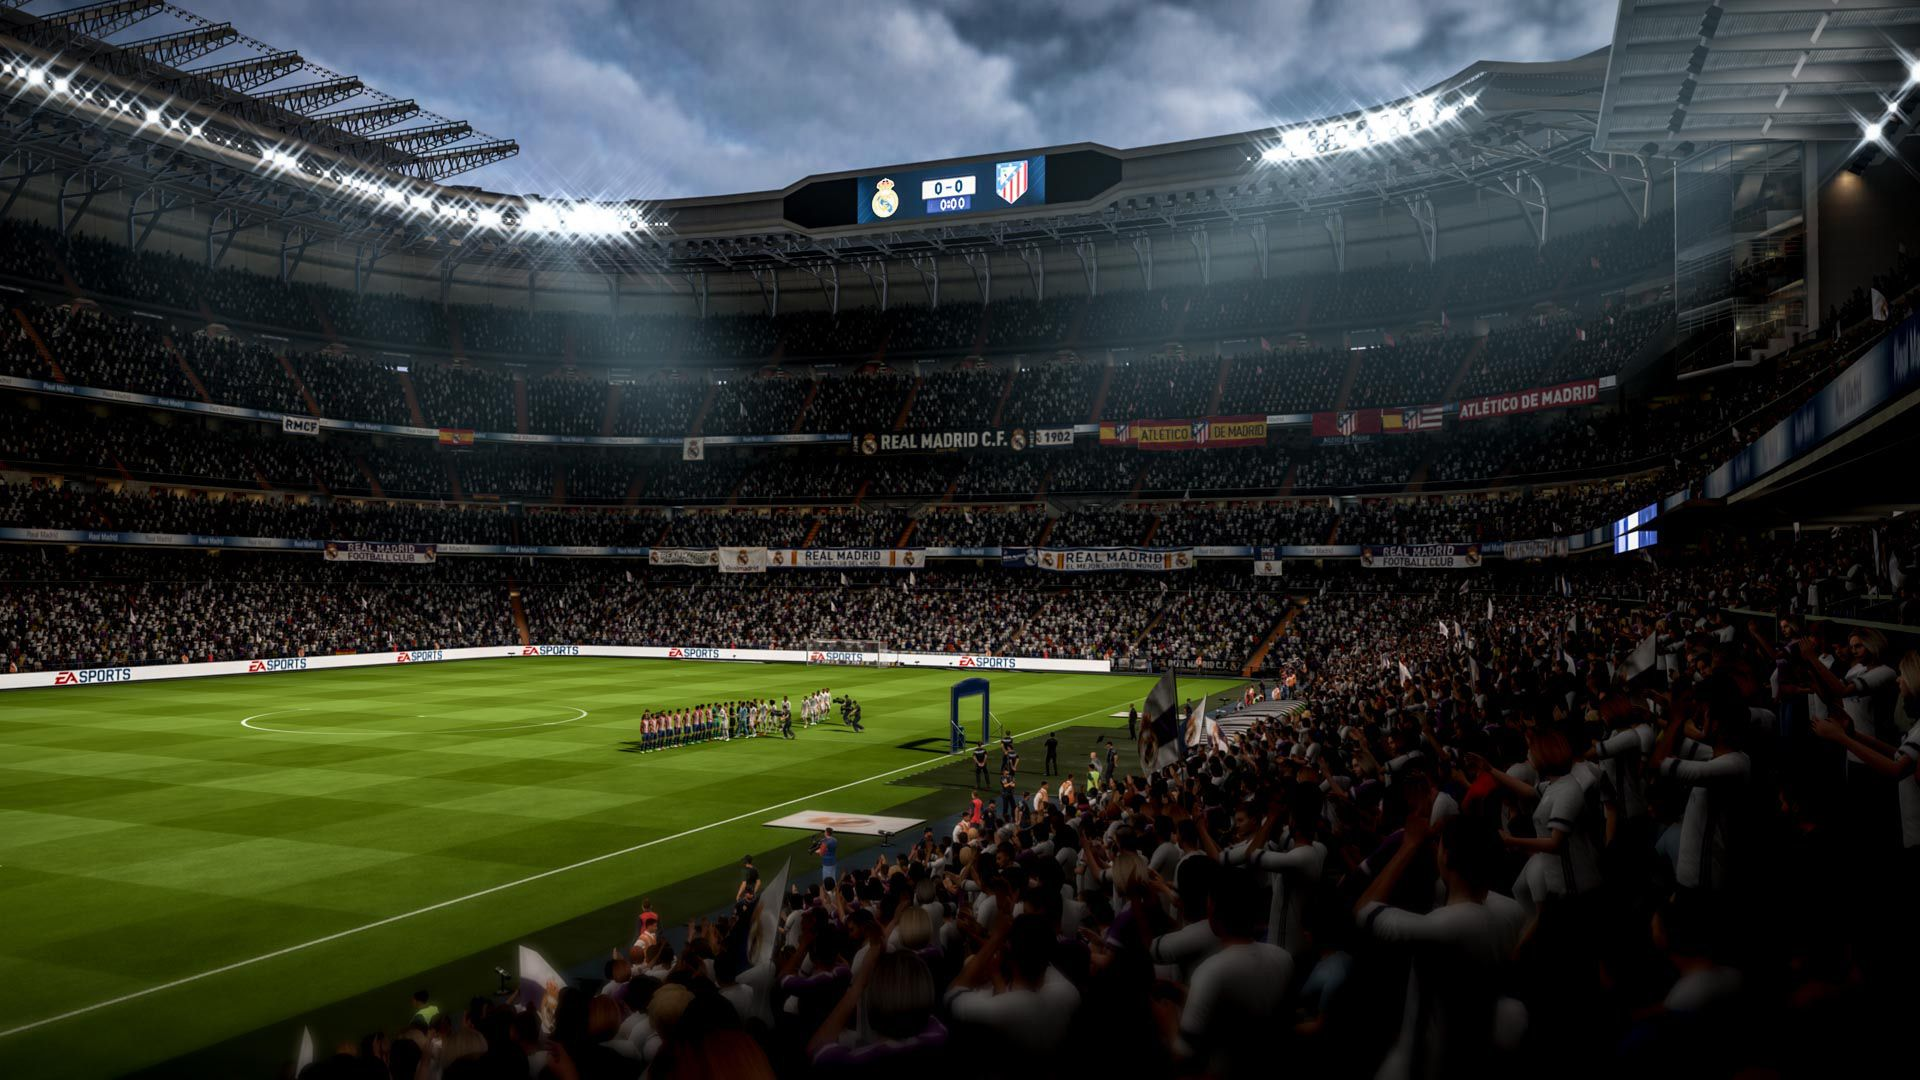 download fifa 18 + update 2 repack - fitgirl singlelink iso rar part google drive direct link uptobox ftp link magnet torrent thepiratebay kickass alternative